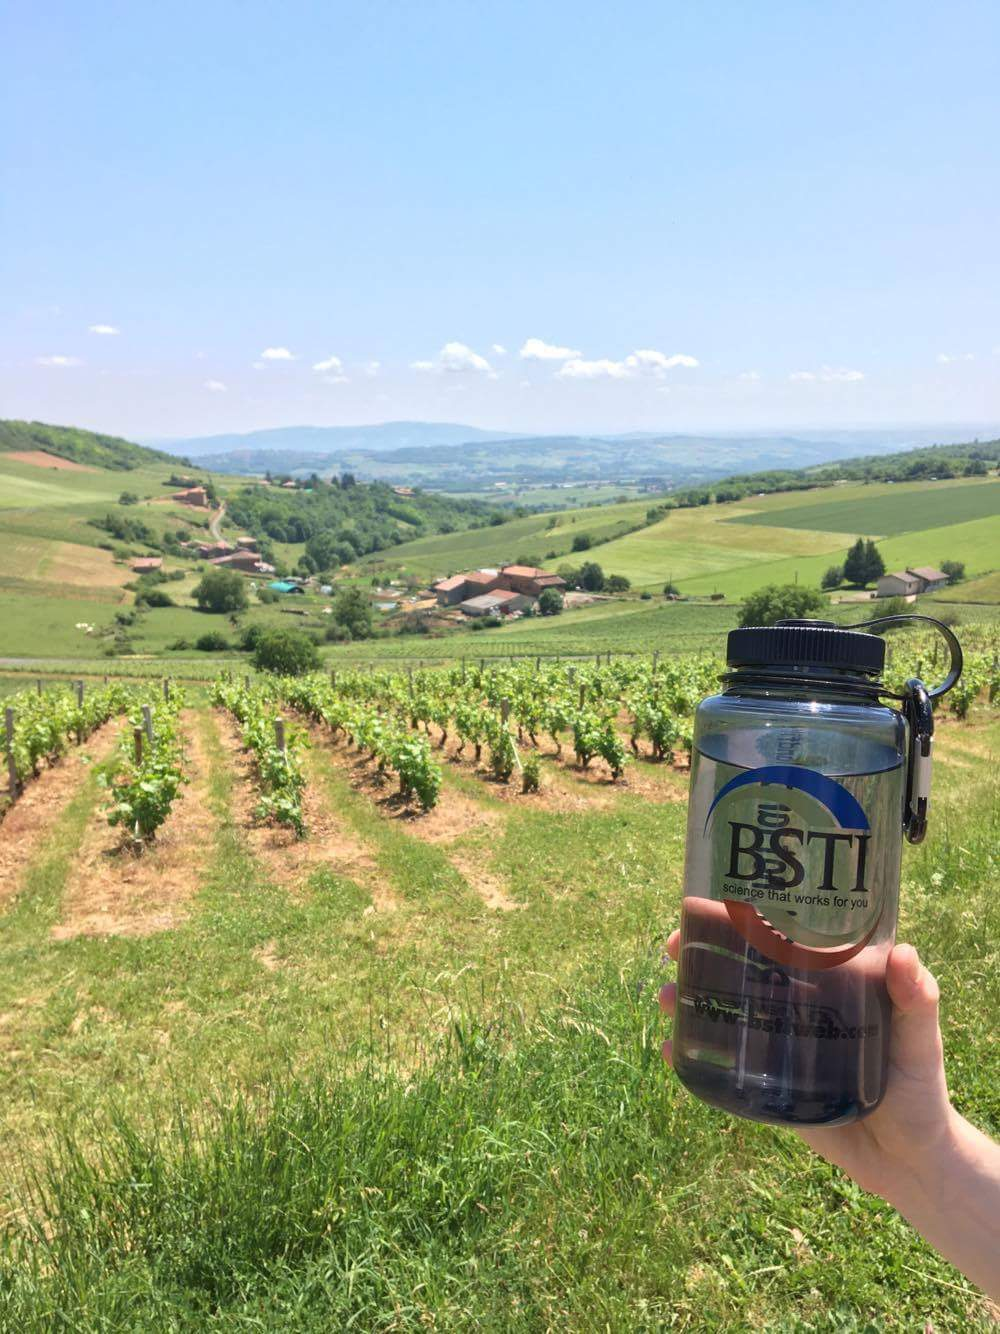 Hiking the vineyards of Beaujolais, France